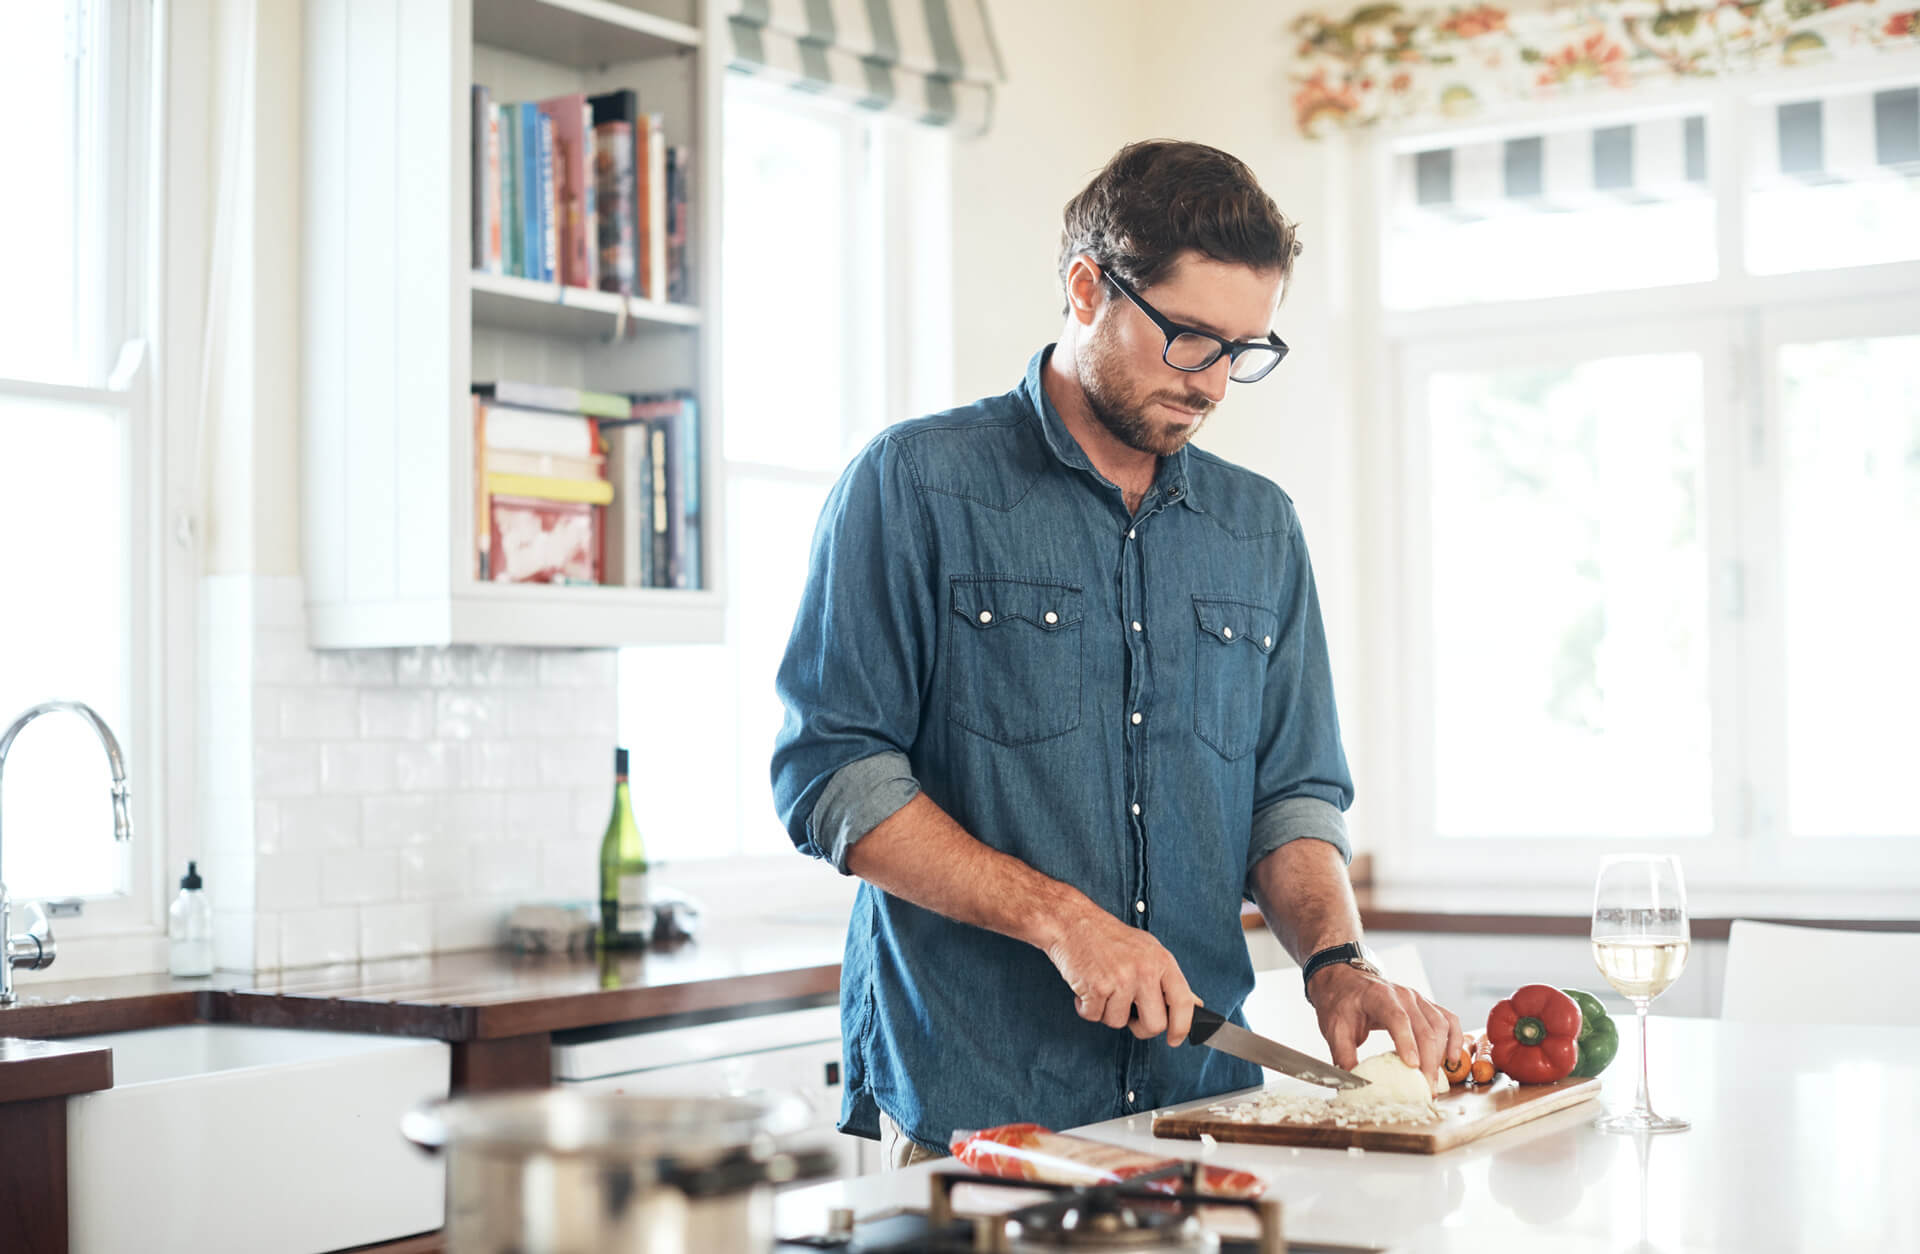 mean in denim shirt and glasses cutting onions in a home kitchen